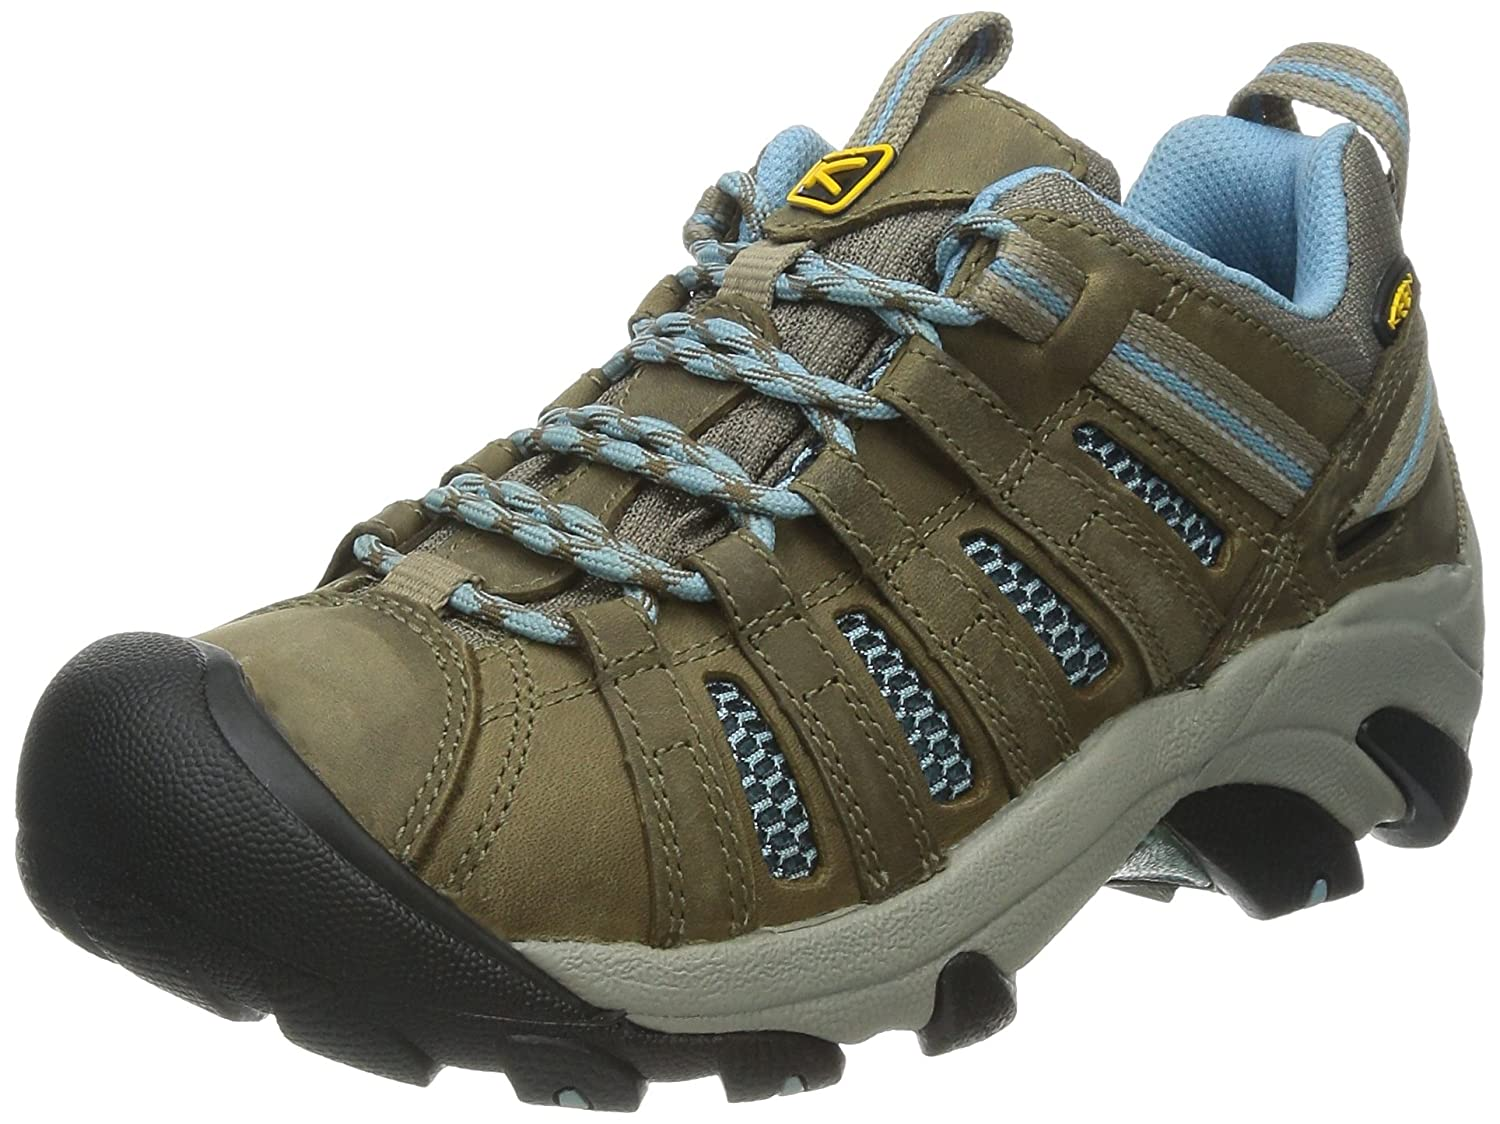 KEEN Women's Voyageur Hiking Shoe B00HGAGBKA 9.5 B(M) US|Brindle/Alaskan Blue